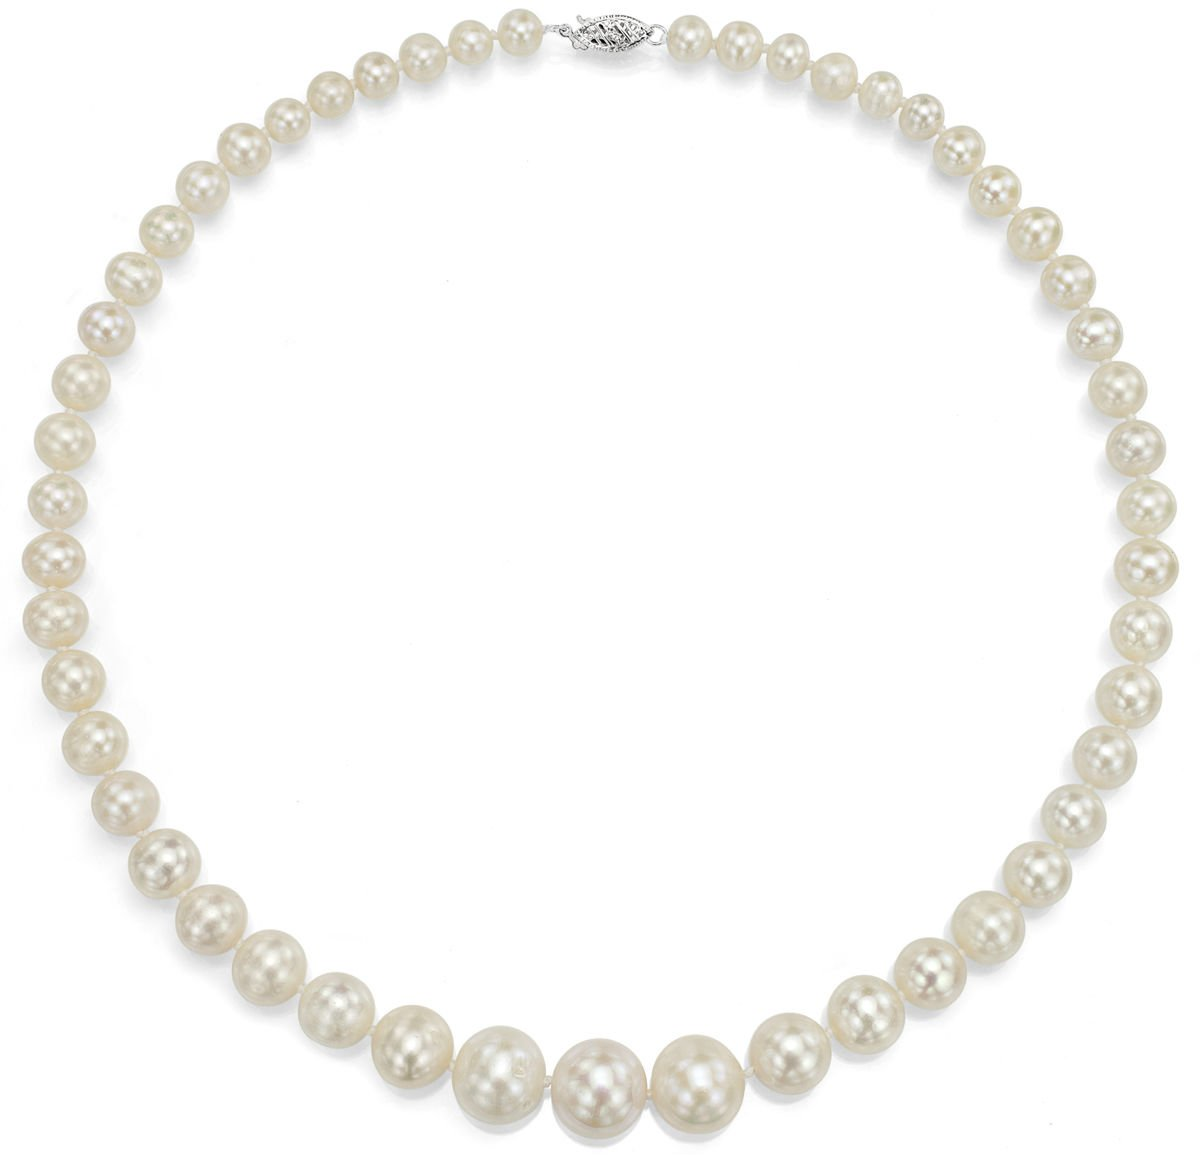 Sterling Silver Graduated 6-13mm White Freshwater Cultured High Luster Pearl Necklace, 18''